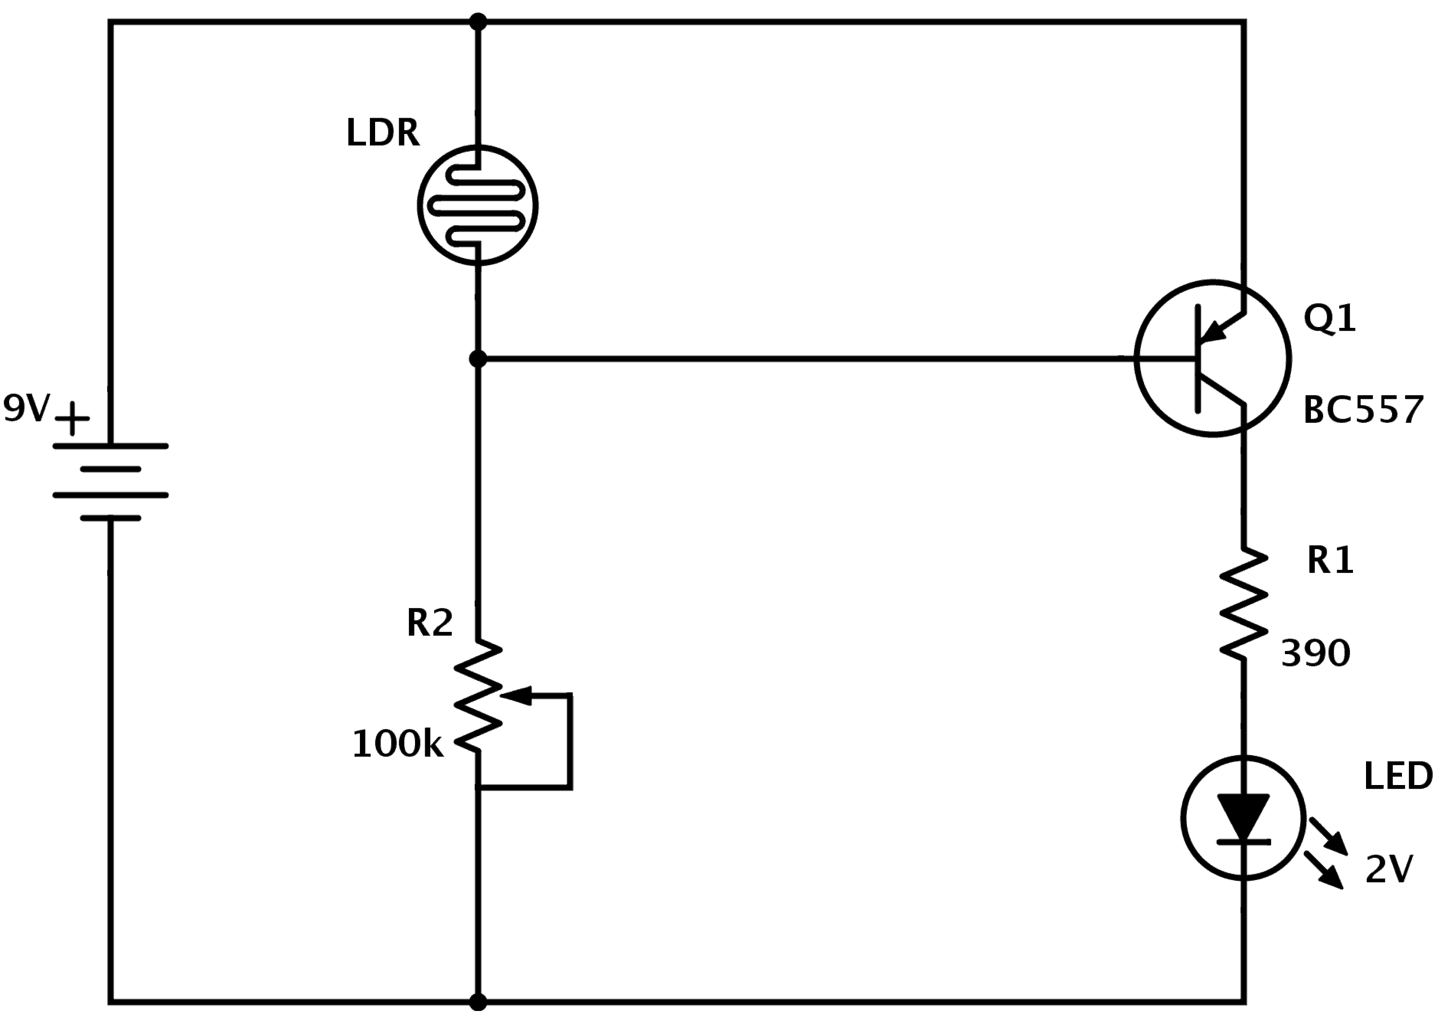 Ldr Circuit Diagram Build Electronic Circuits Blinking Led With Schematics And Explanation Pnp Transistor Dark Detector